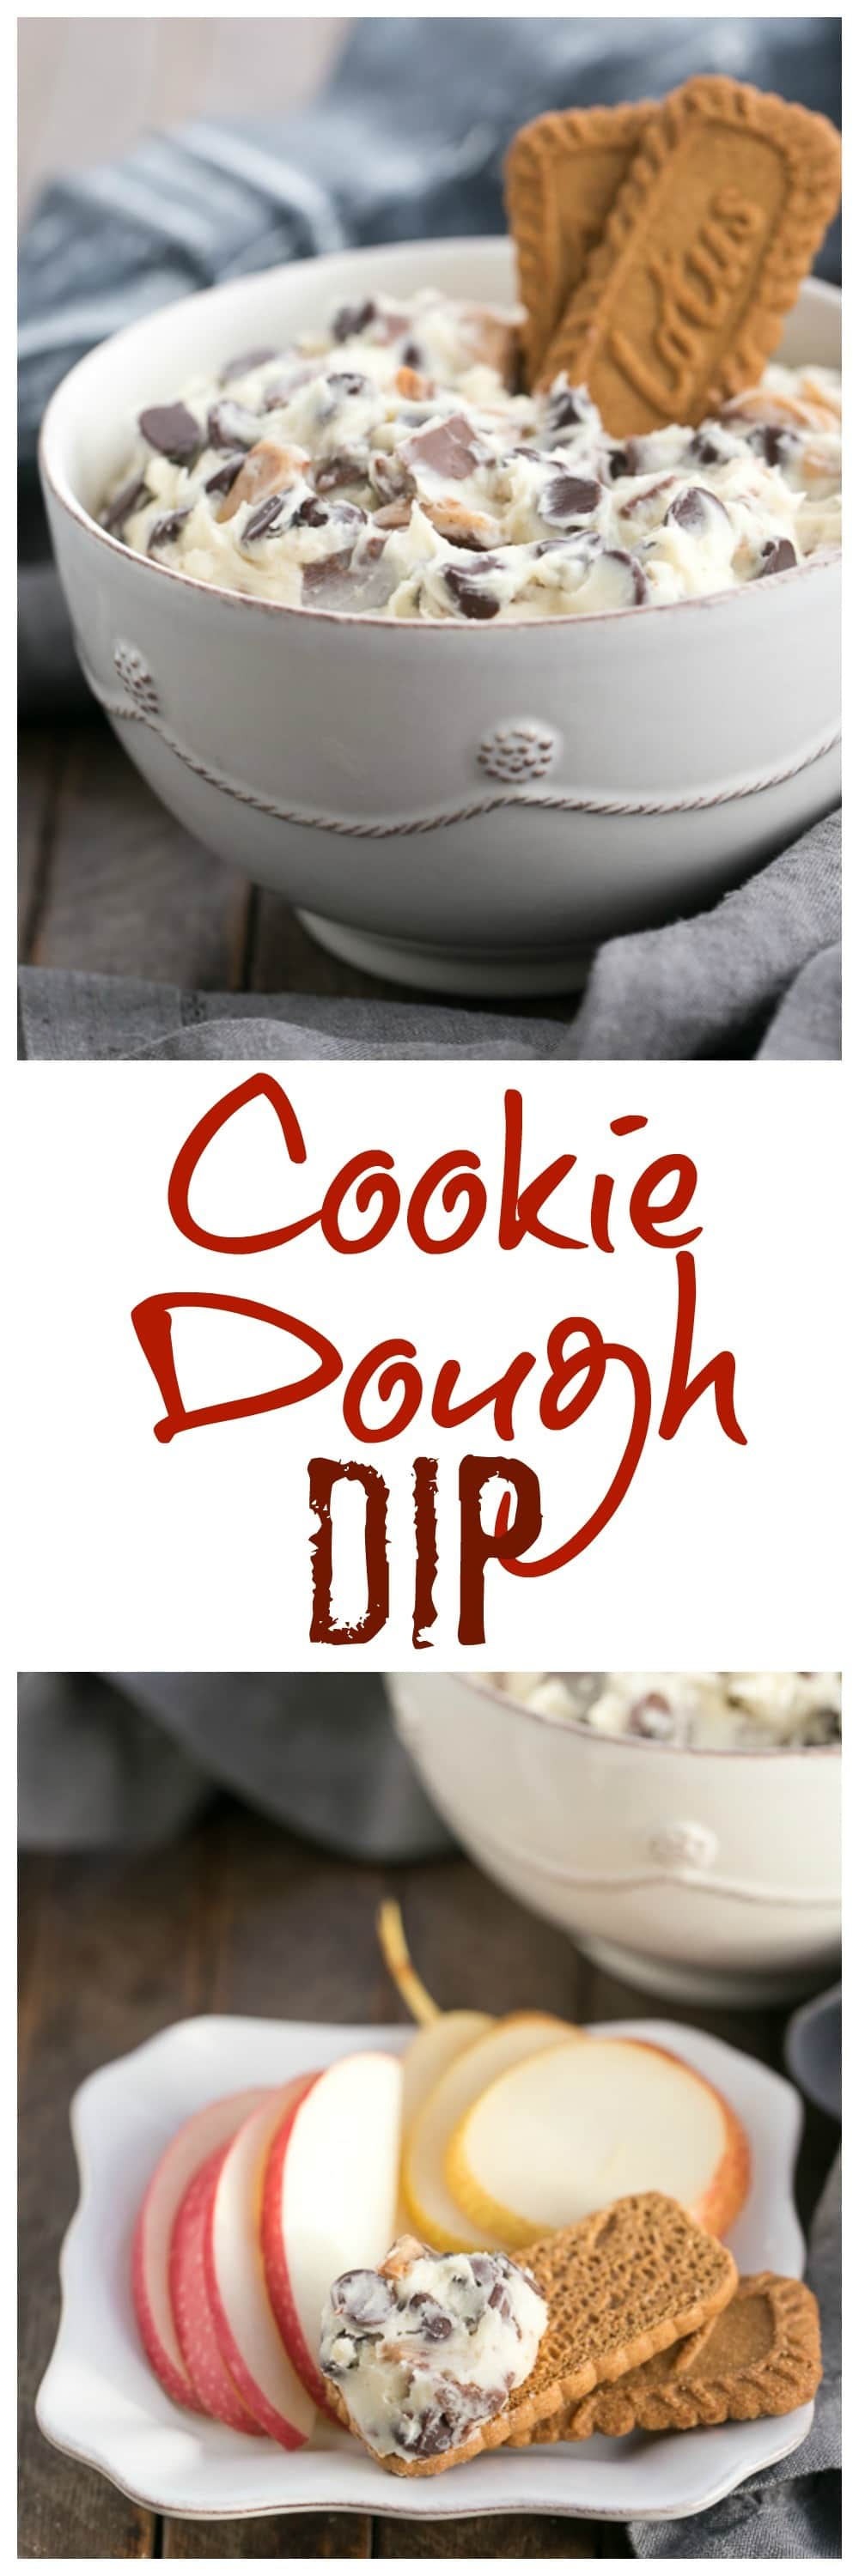 Cookie Dough Dip | A dreamy dip filled with chocolate chips and toffee pieces!